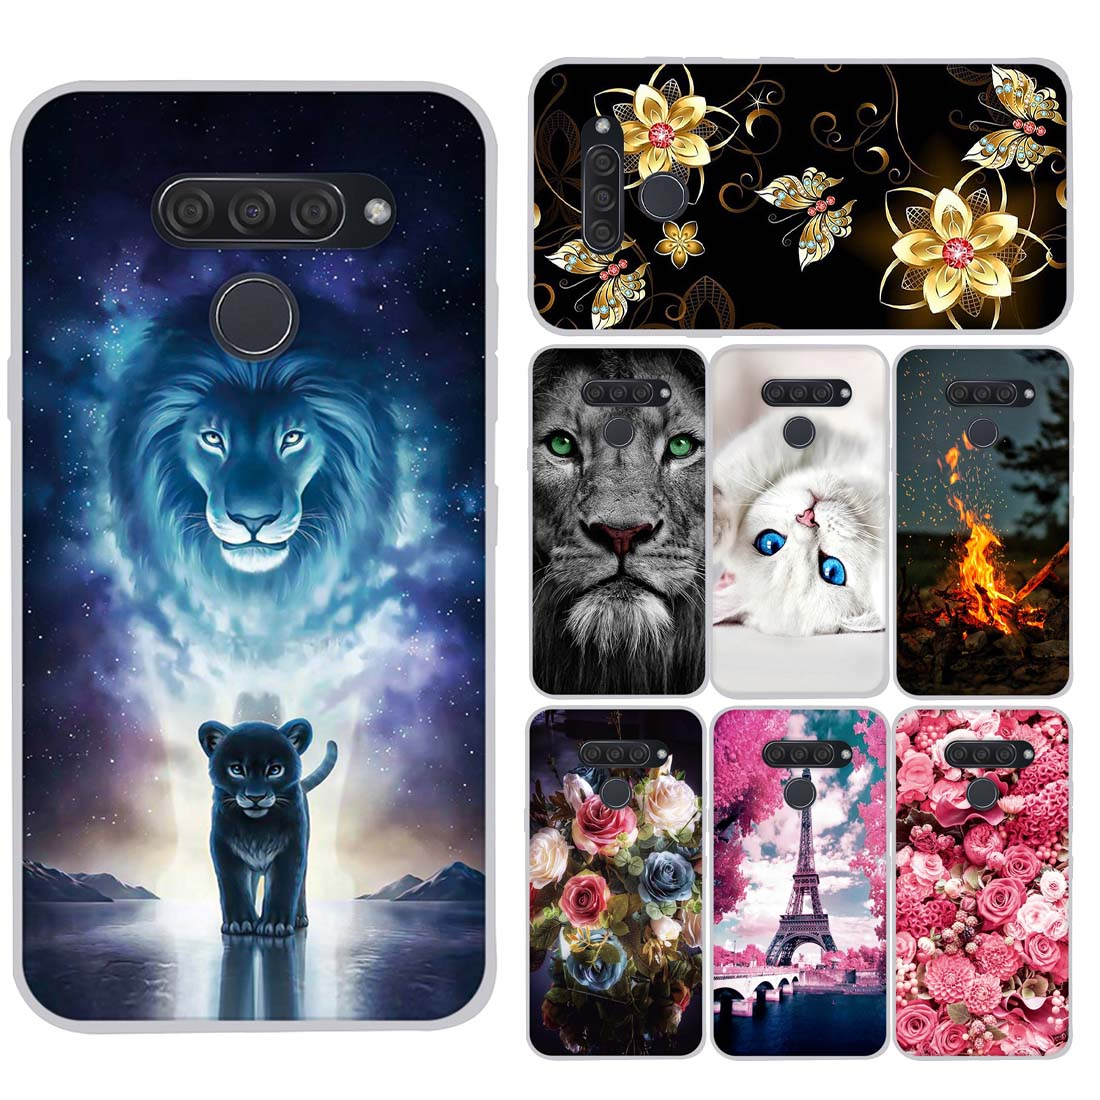 Soft TPU Cases For LG Q60 Case Luxury TPU Soft Silicone Cute Phone Back Cover for LG K50 Q 60 Case Full Protective Bumper Coque